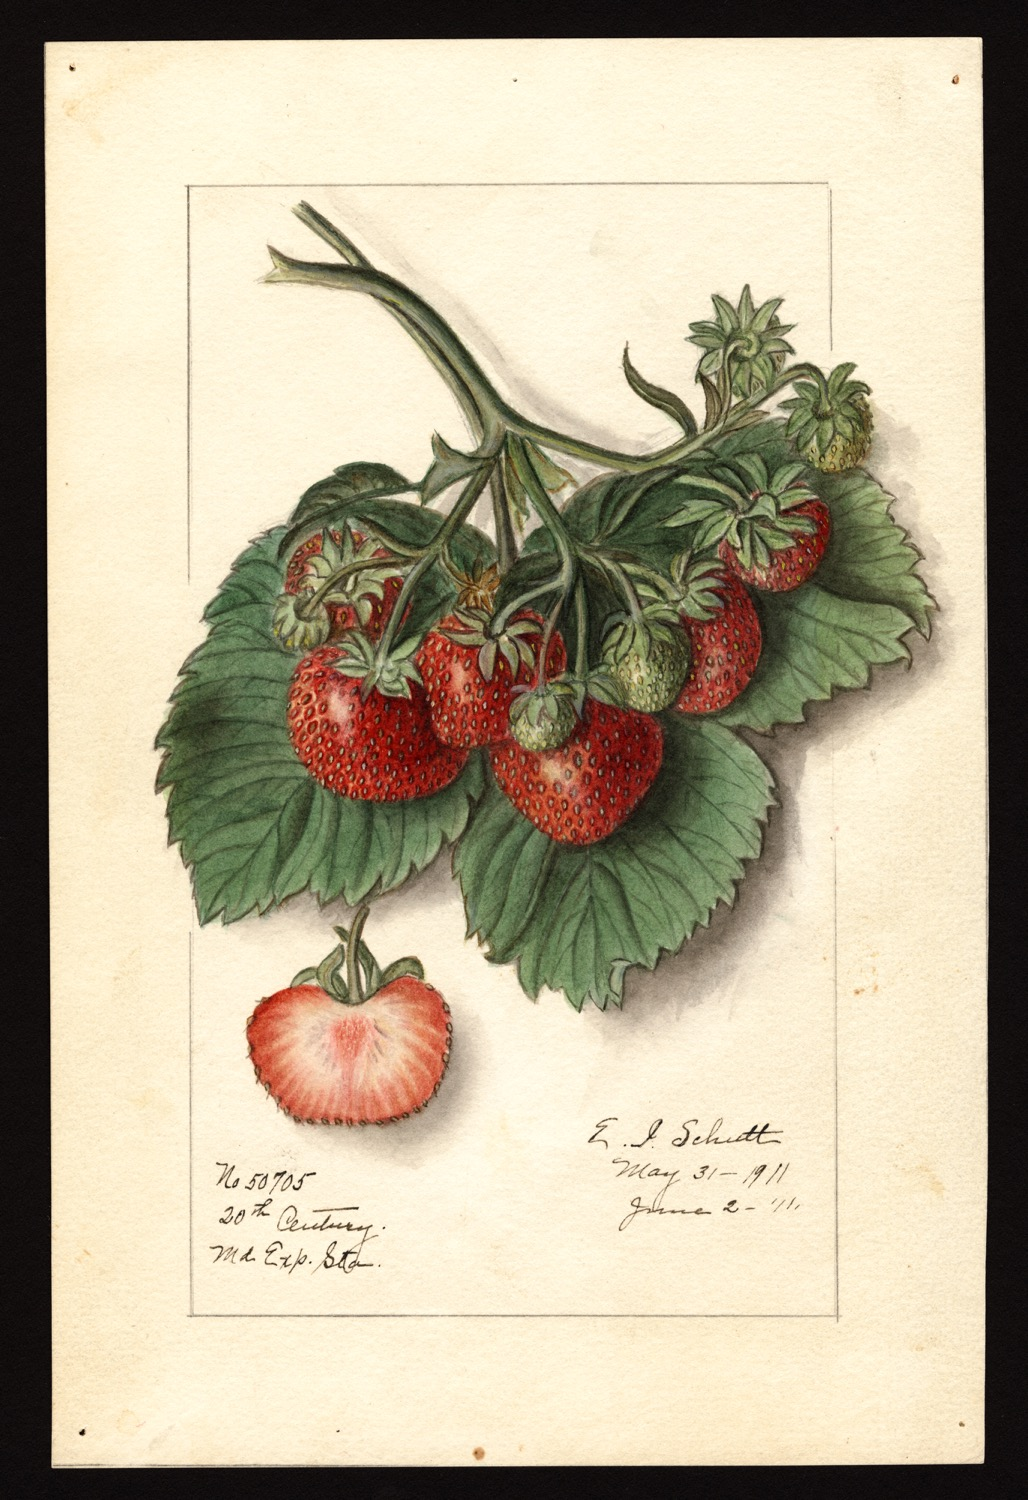 Ellen Isham Schutt, fragola, 1911, (fonte: U.S. Department of Agriculture Pomological Watercolor Collection. Rare and Special Collections, National Agricultural Library, Beltsville, MD 20705)